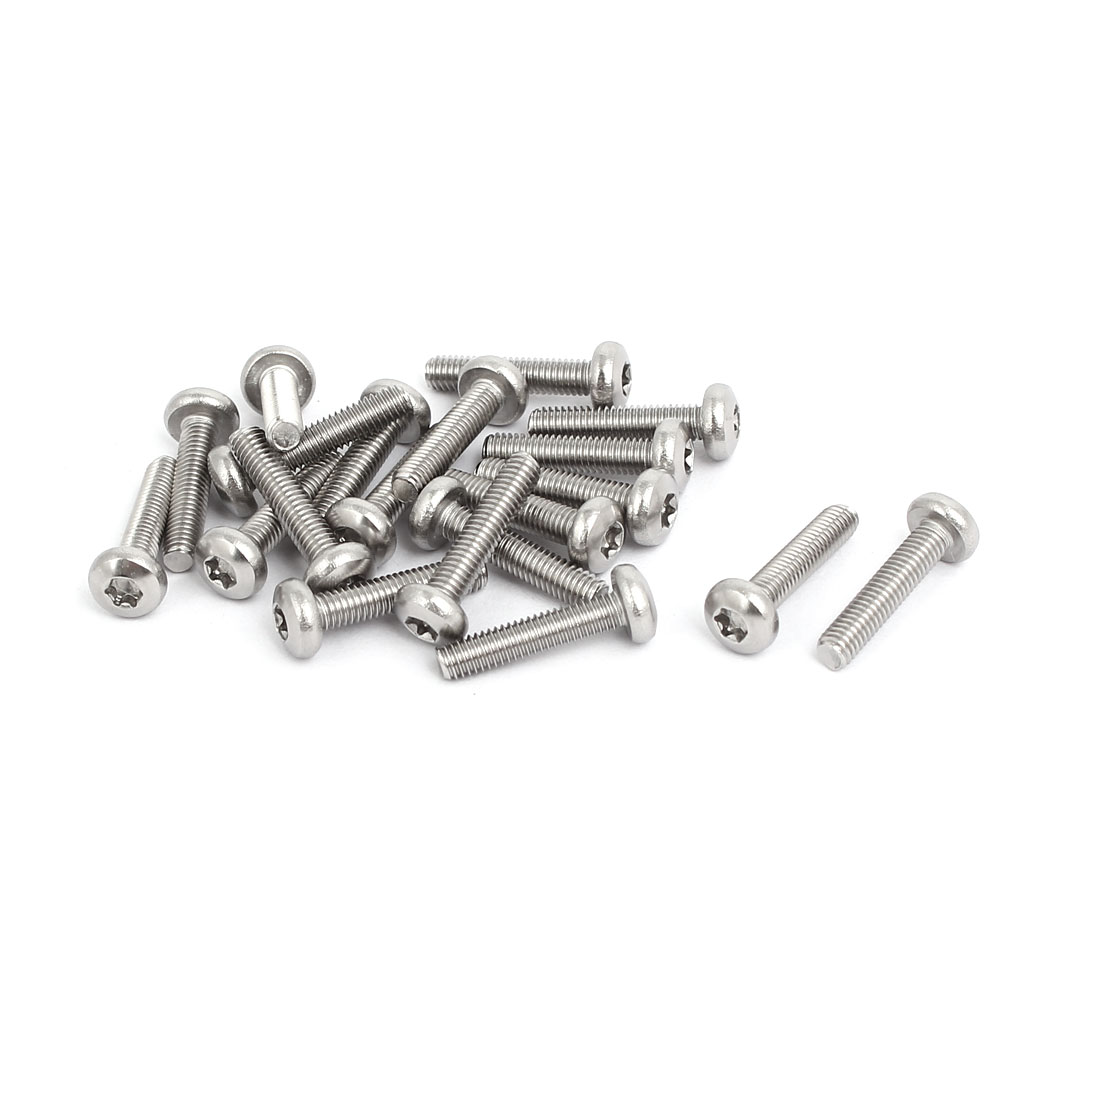 M3x14mm 304 Stainless Steel Button Head Torx Screws Bolts T10 Drive 20pcs